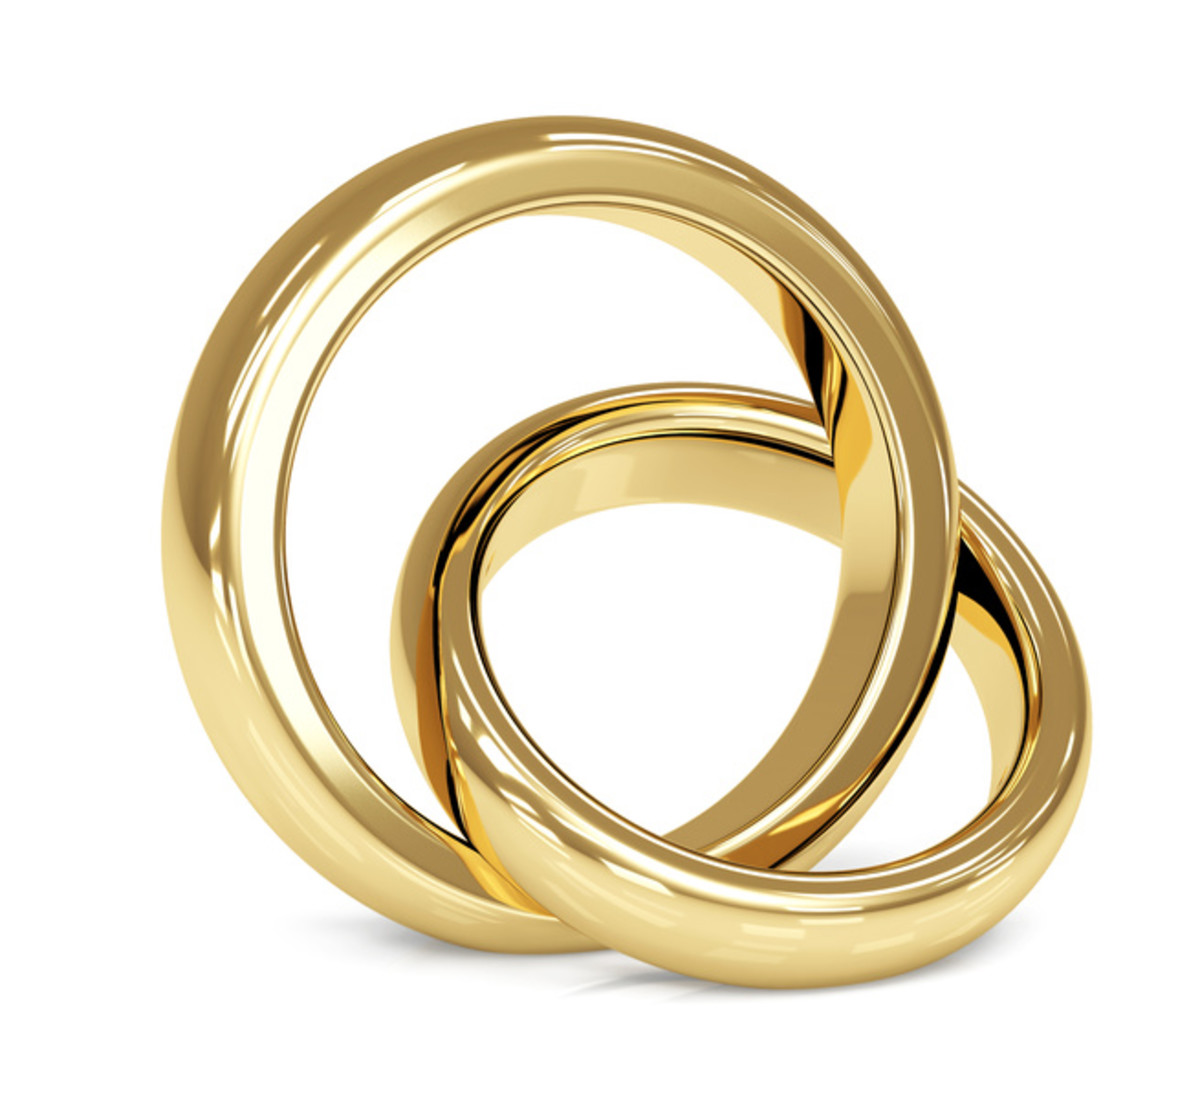 A set of simple modern day wedding rings